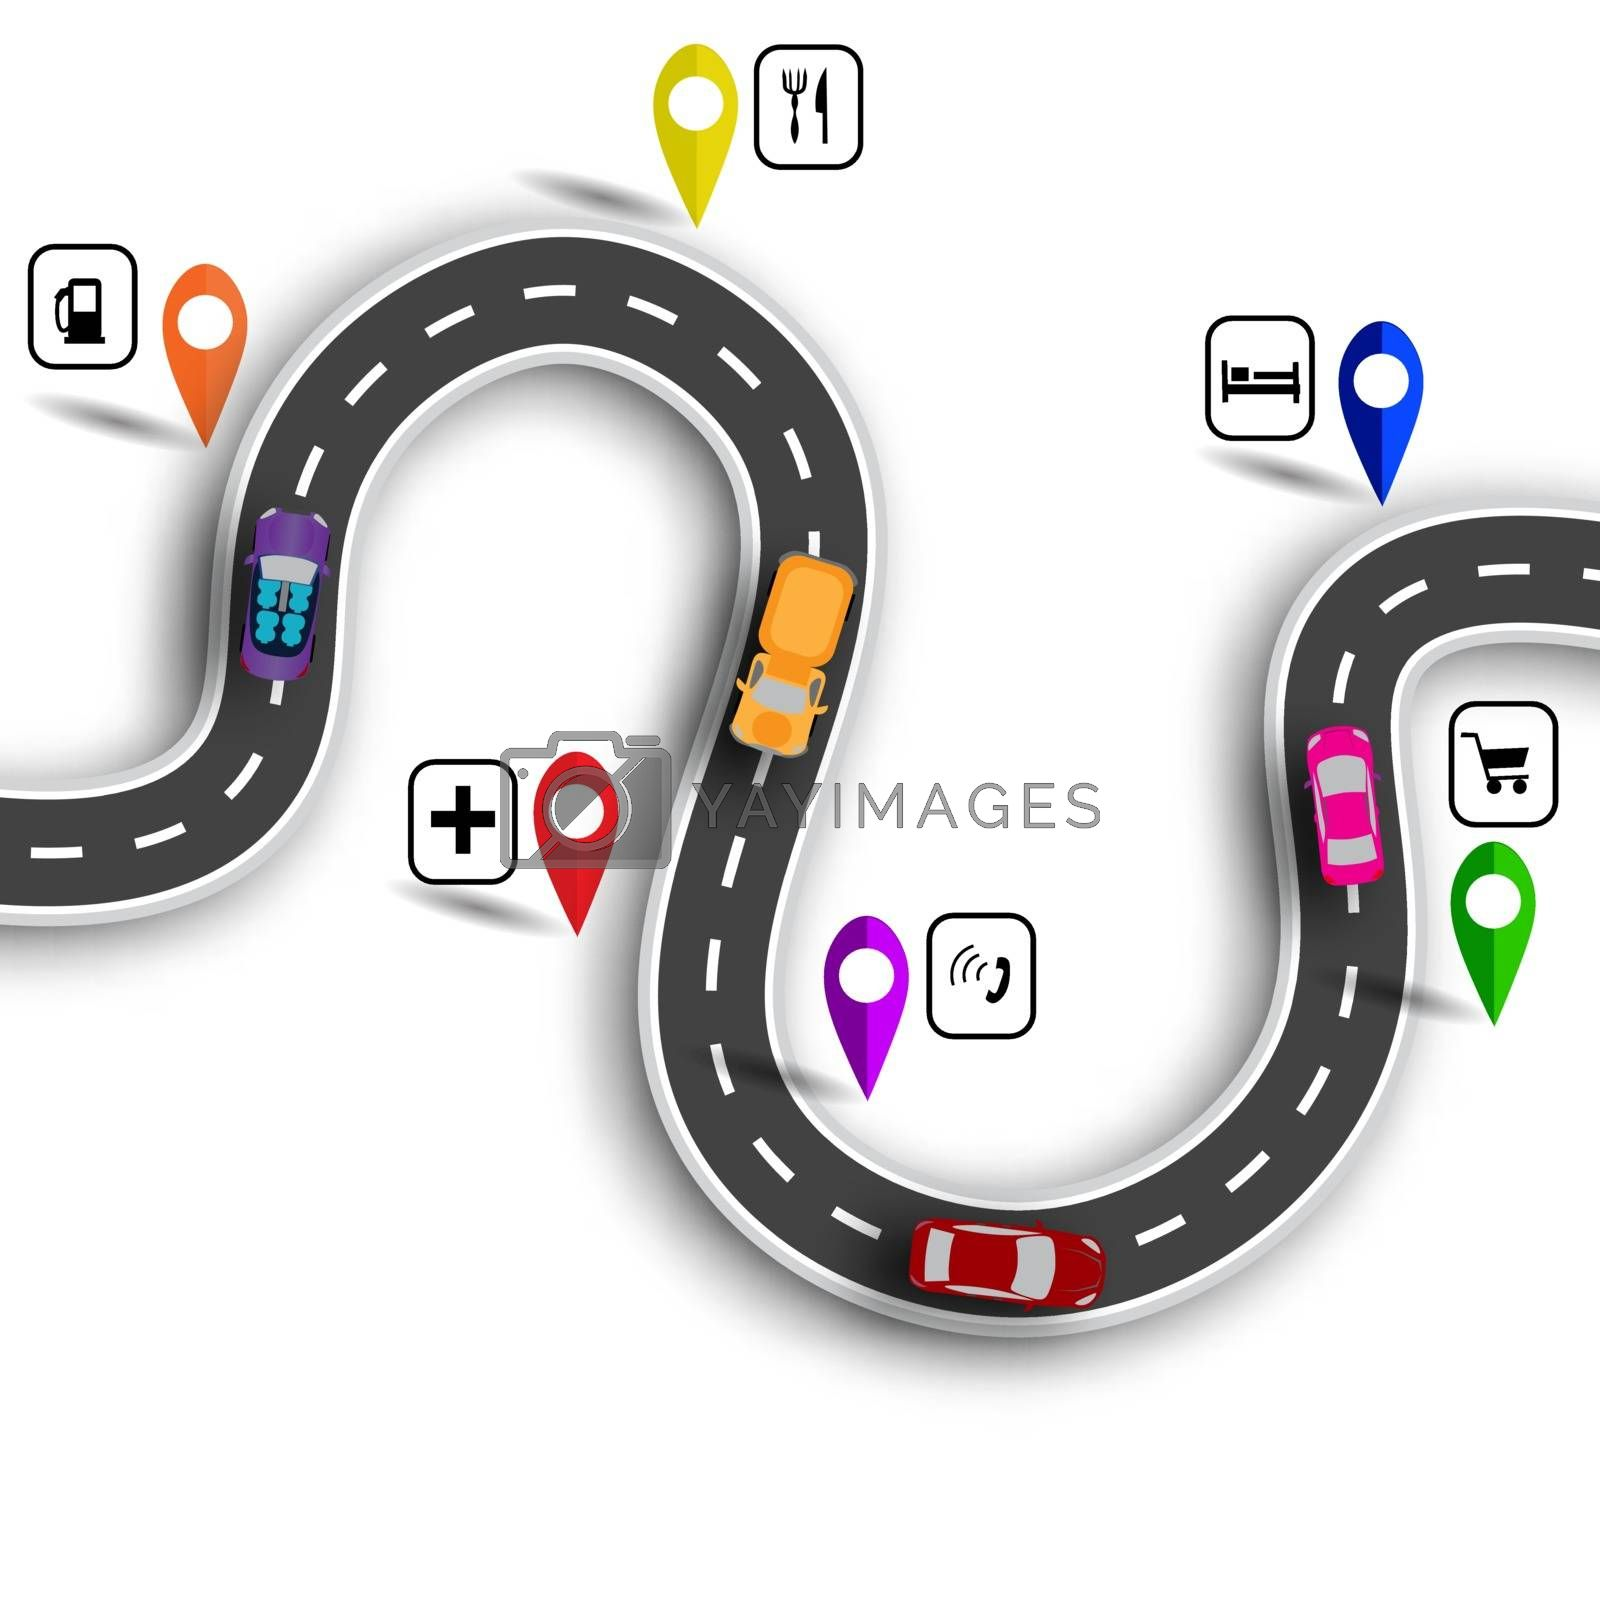 Infographic. Winding road with signs. 3D. Cars. The path indicated by the navigator. Vector illustration